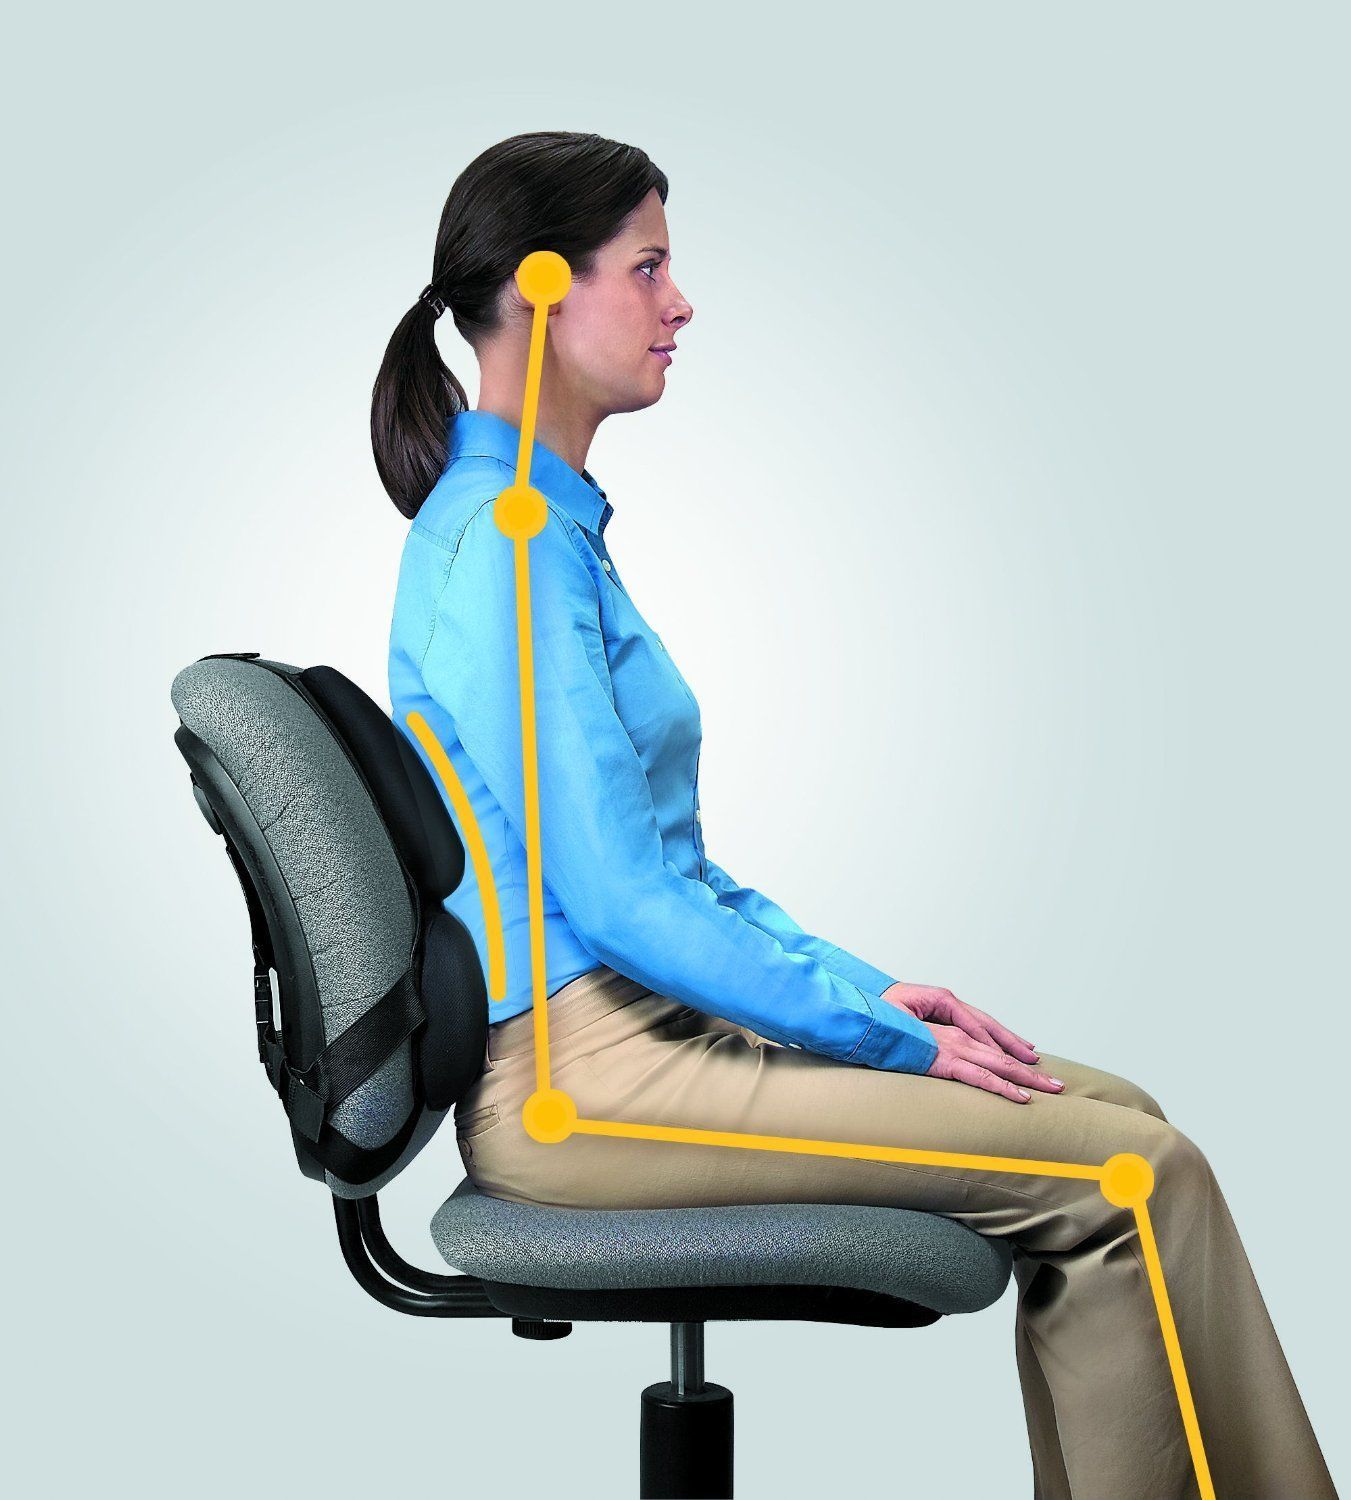 Best Desk Chair For Back Support Strap On Chair Back Support Desk Ergonomic Lumbar Office